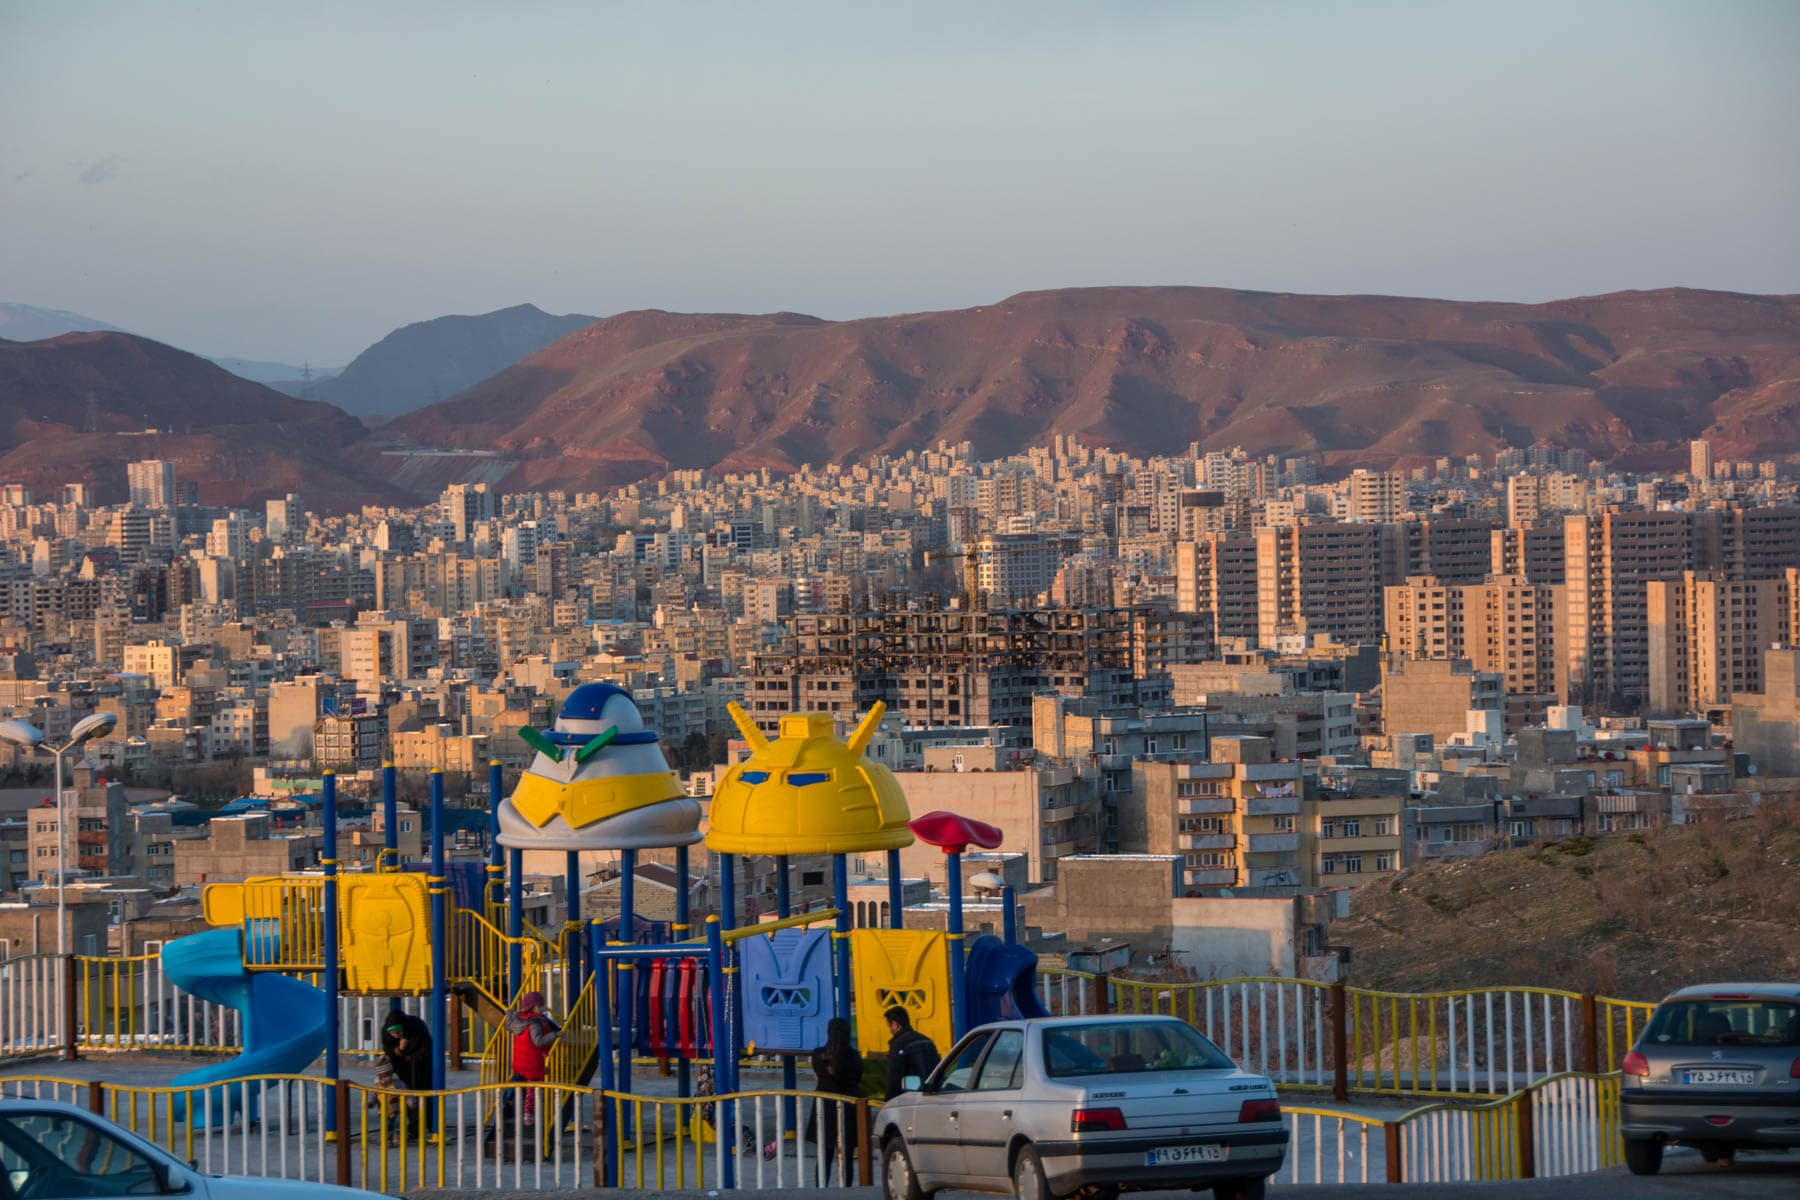 Two week Iran travel itinerary - Sunset view of Tabriz, Iran skyline - Lost With Purpose